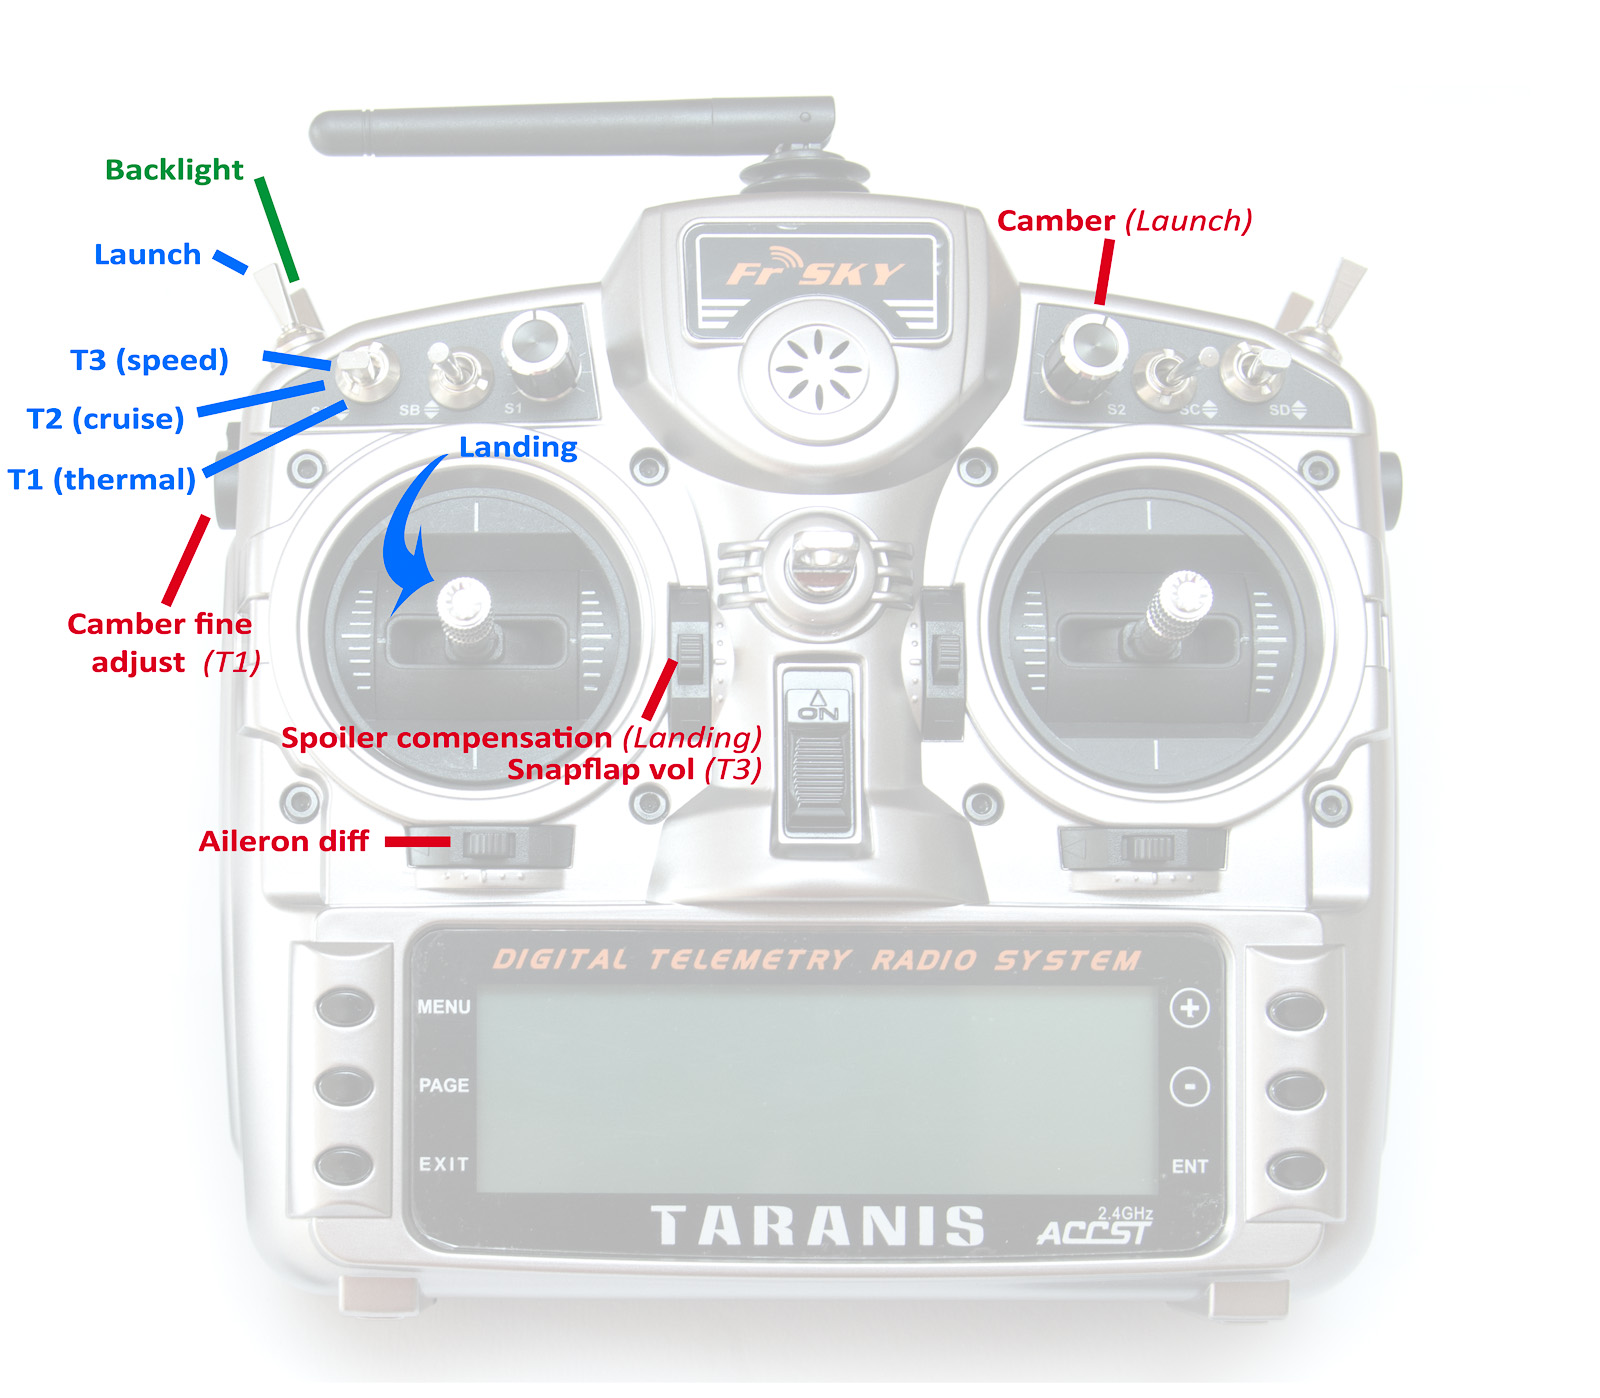 RC-SOAR - the Blog: Coming soon, Thermal Duration / F3J setup for